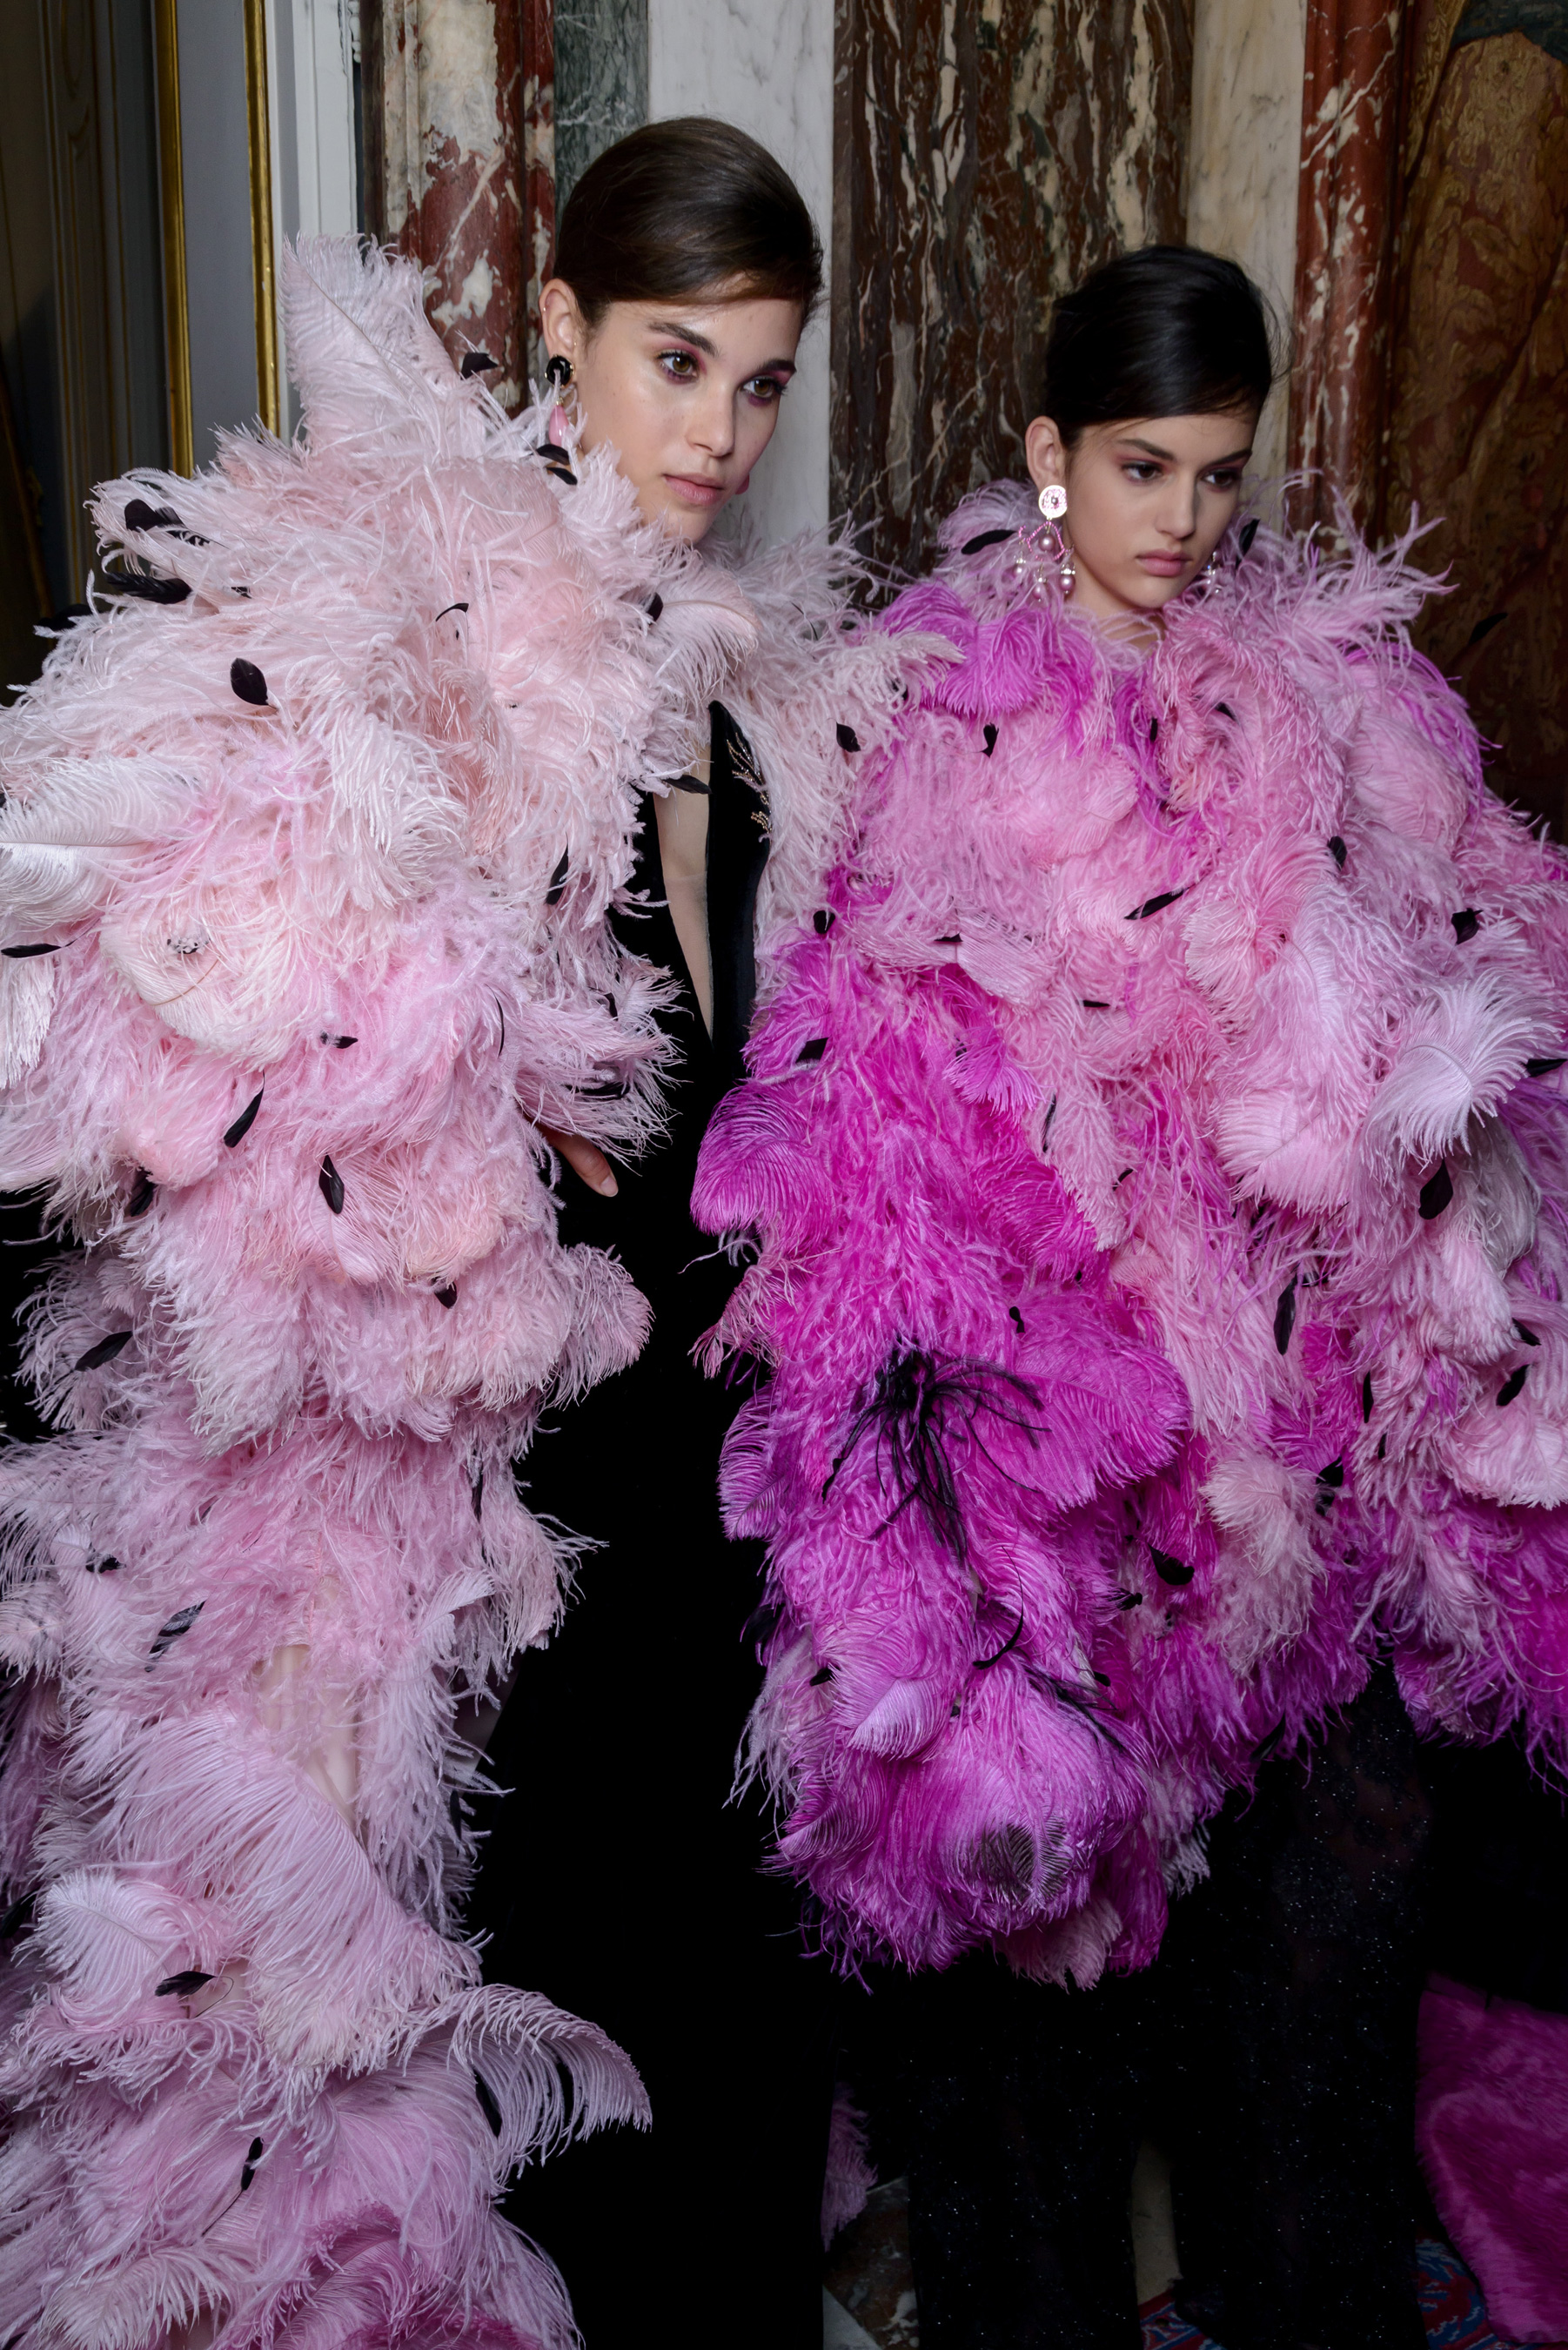 Giorgio Armani Prive Fall 2018 Couture Fashion Show Backstage